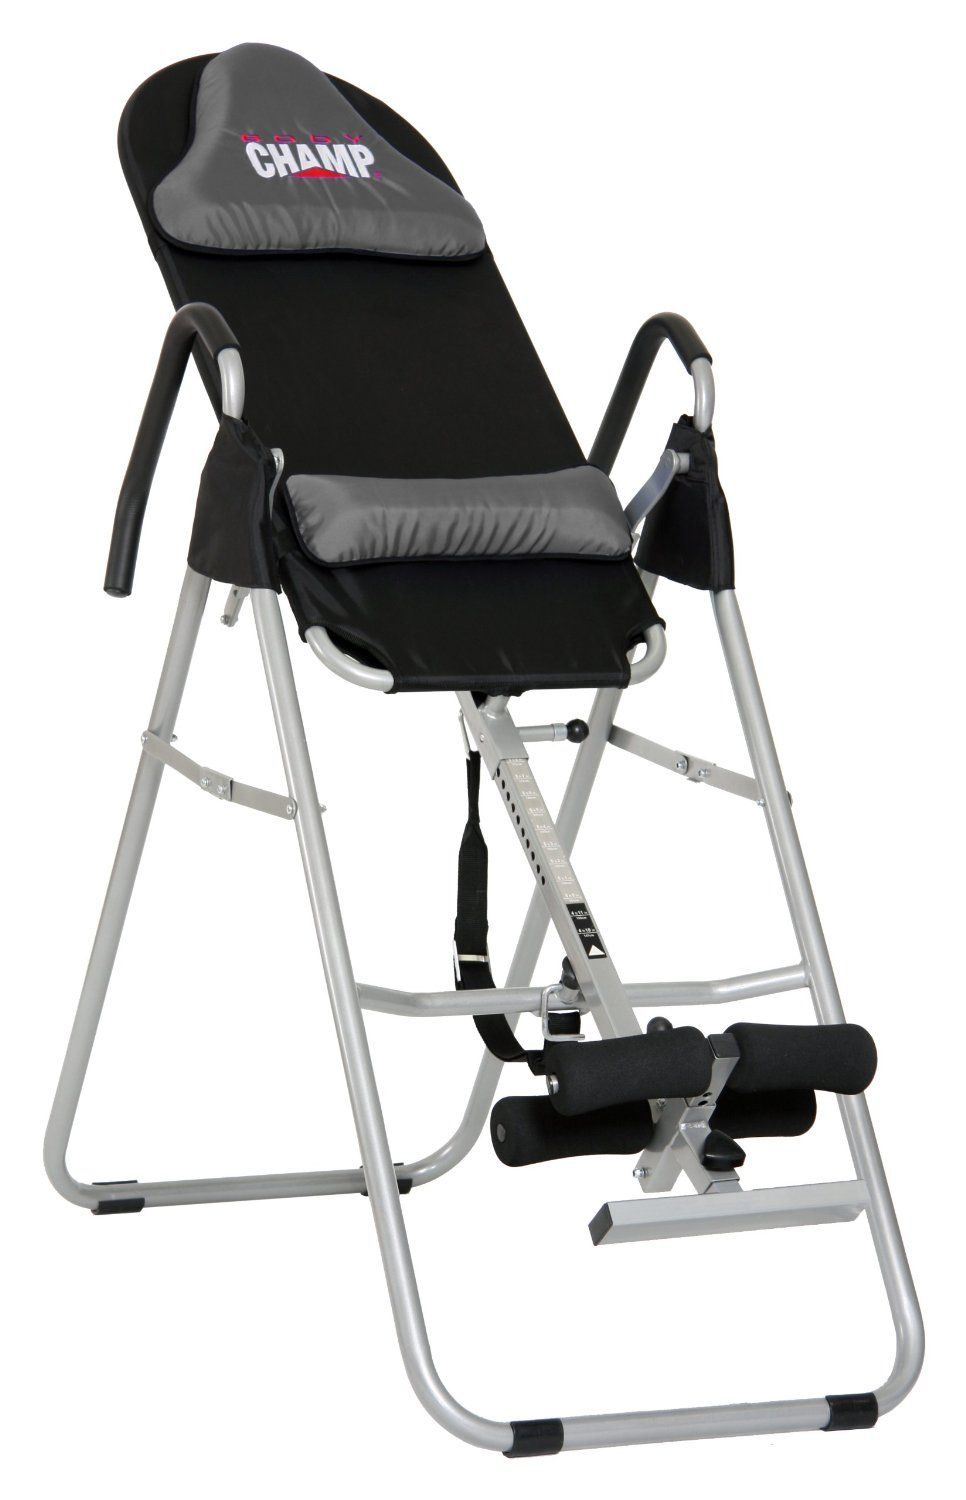 Inversion table review body max gravity inversion system